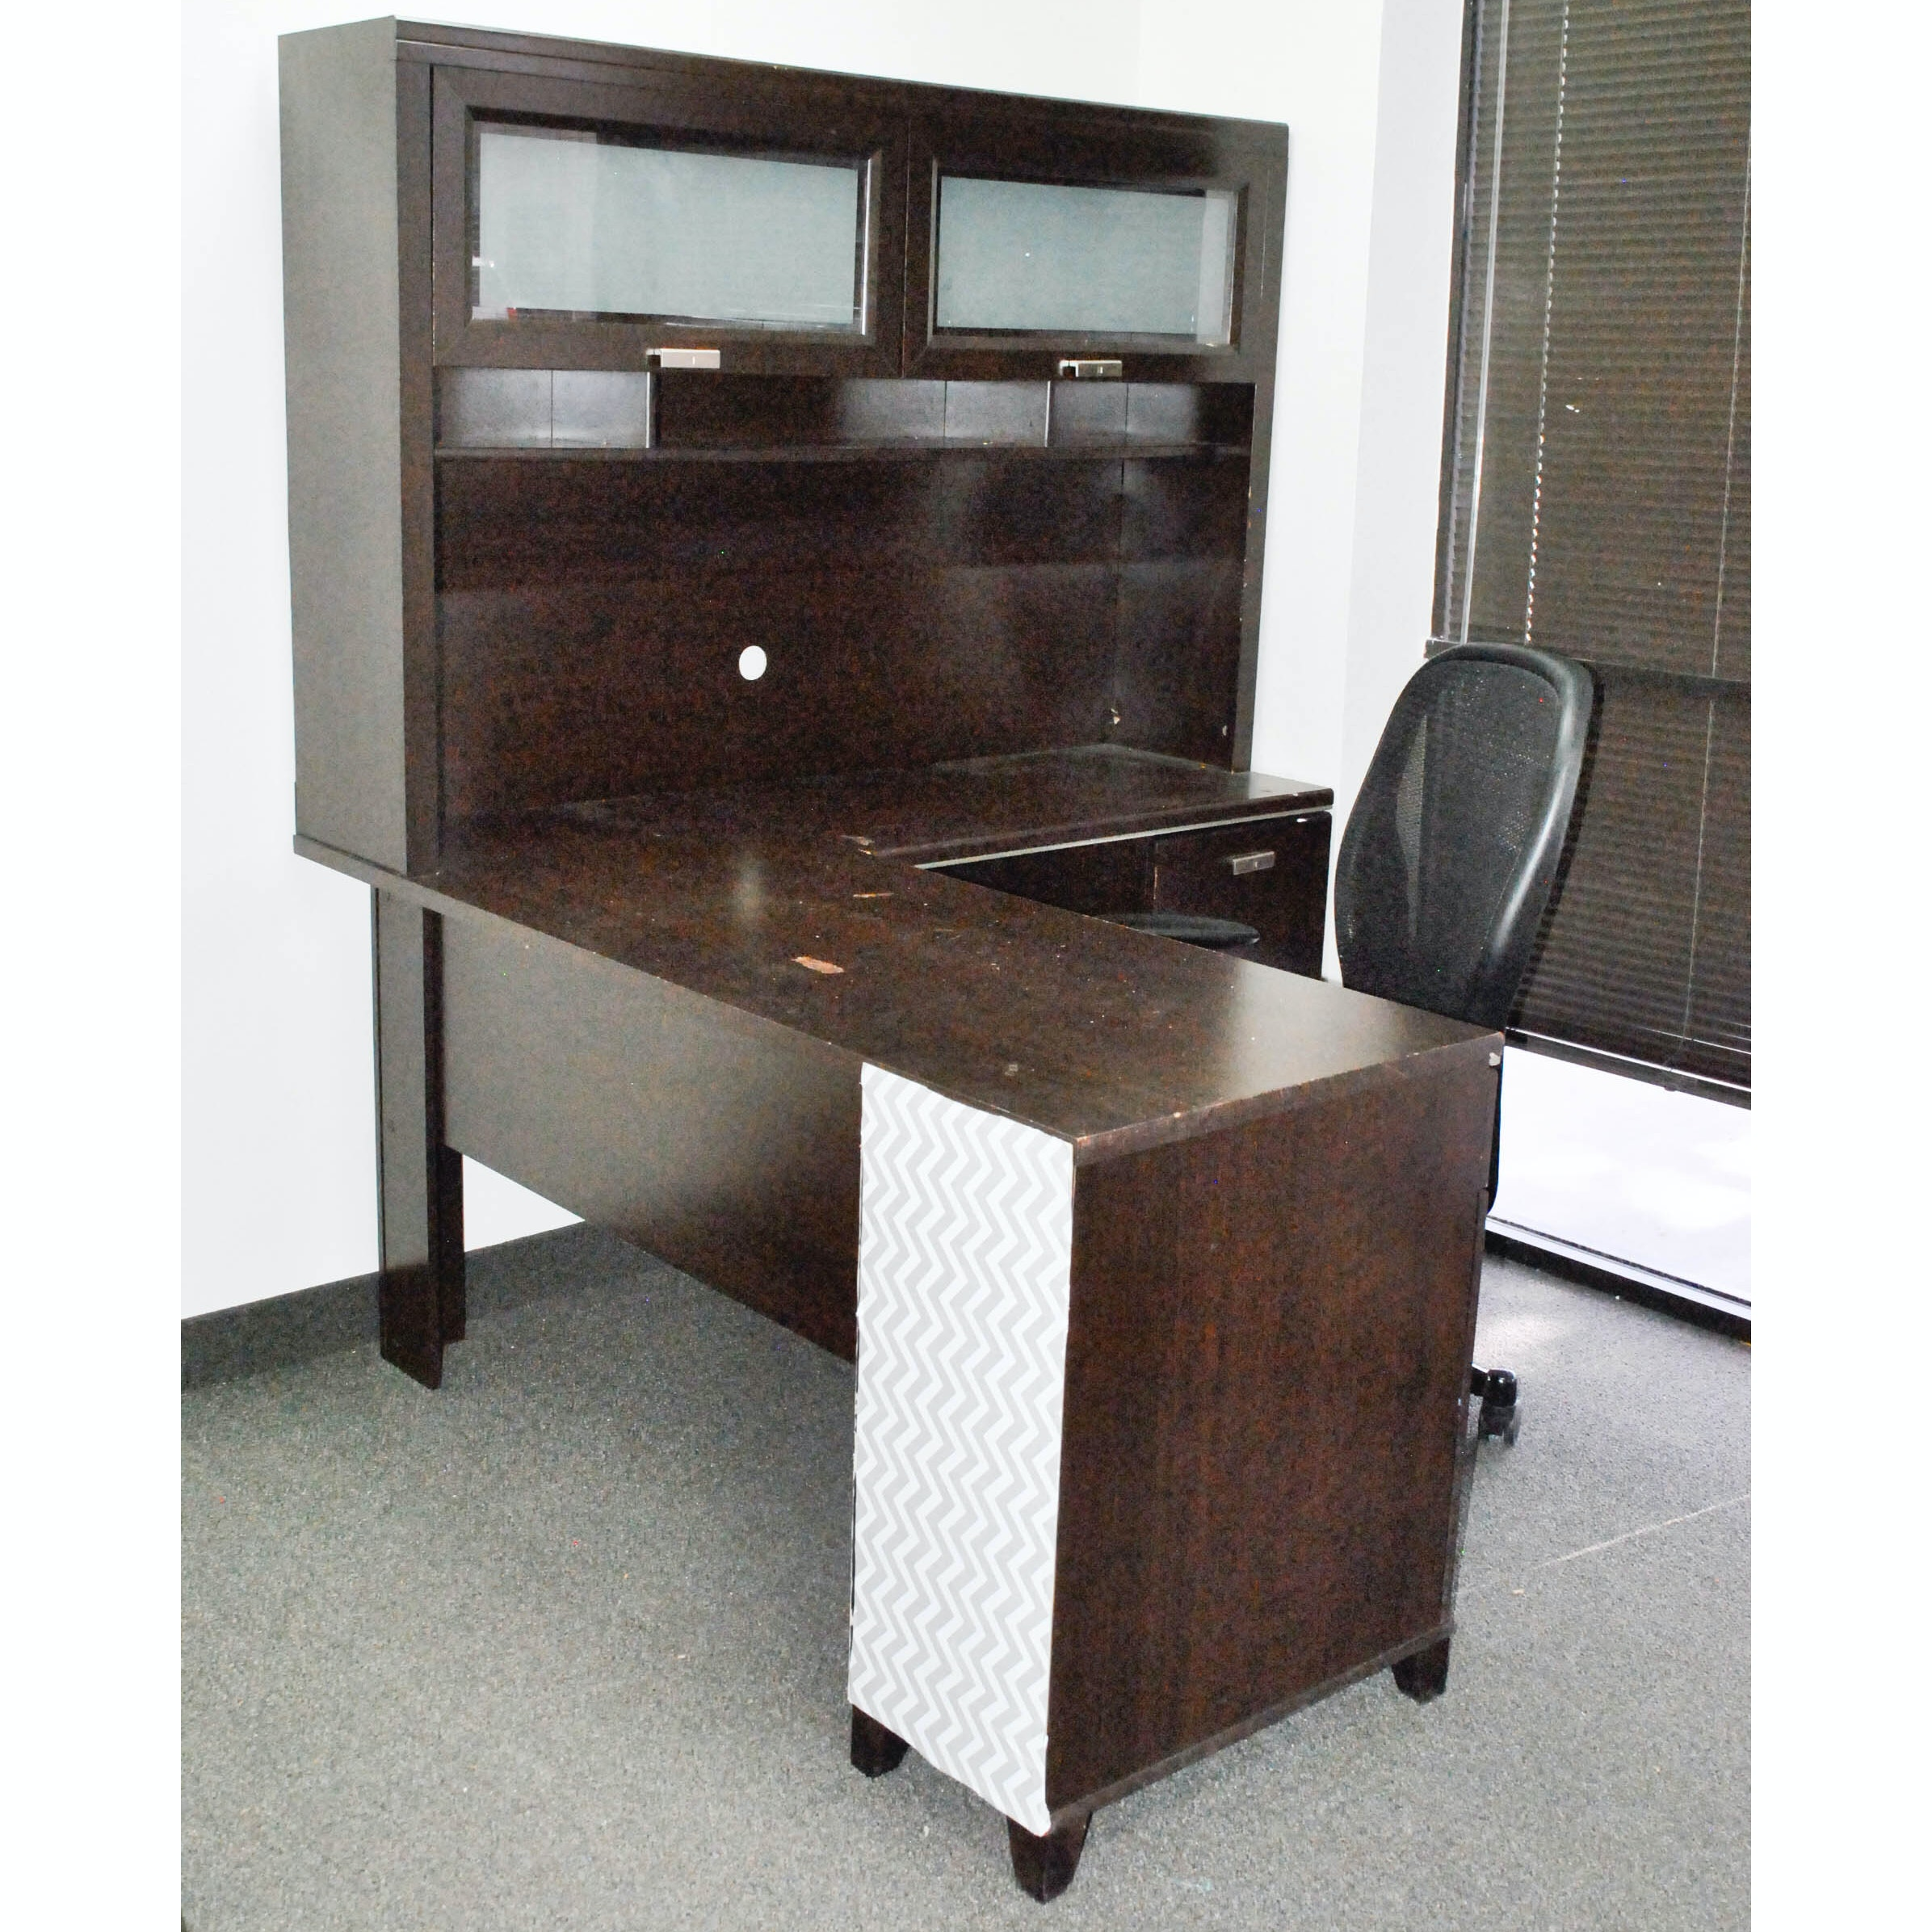 Dark Stain Desk, Credenza and Shelving with Office Chair